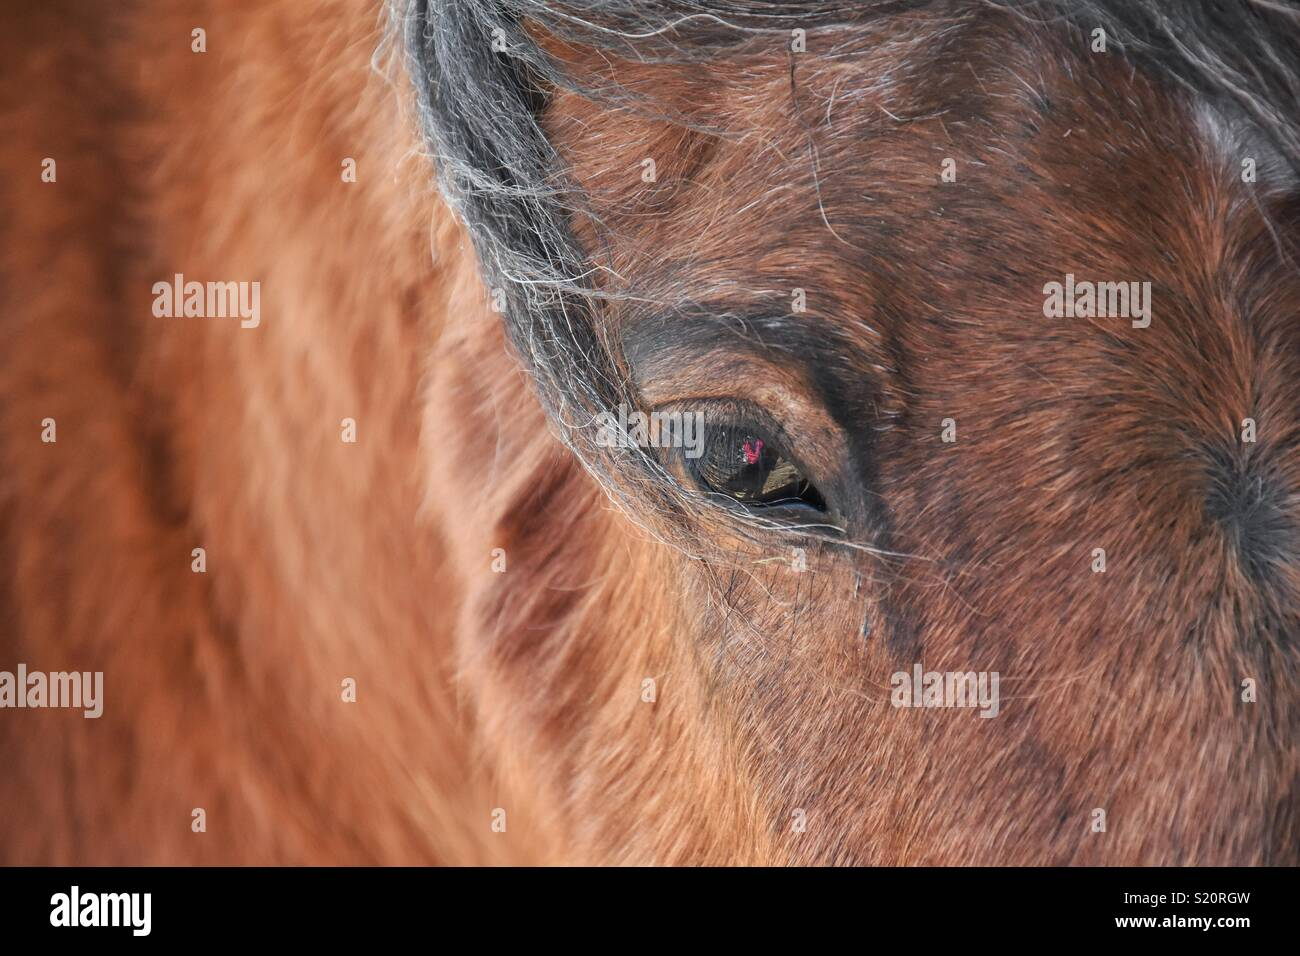 Close up of a brown horse focusing on the horses eye. - Stock Image